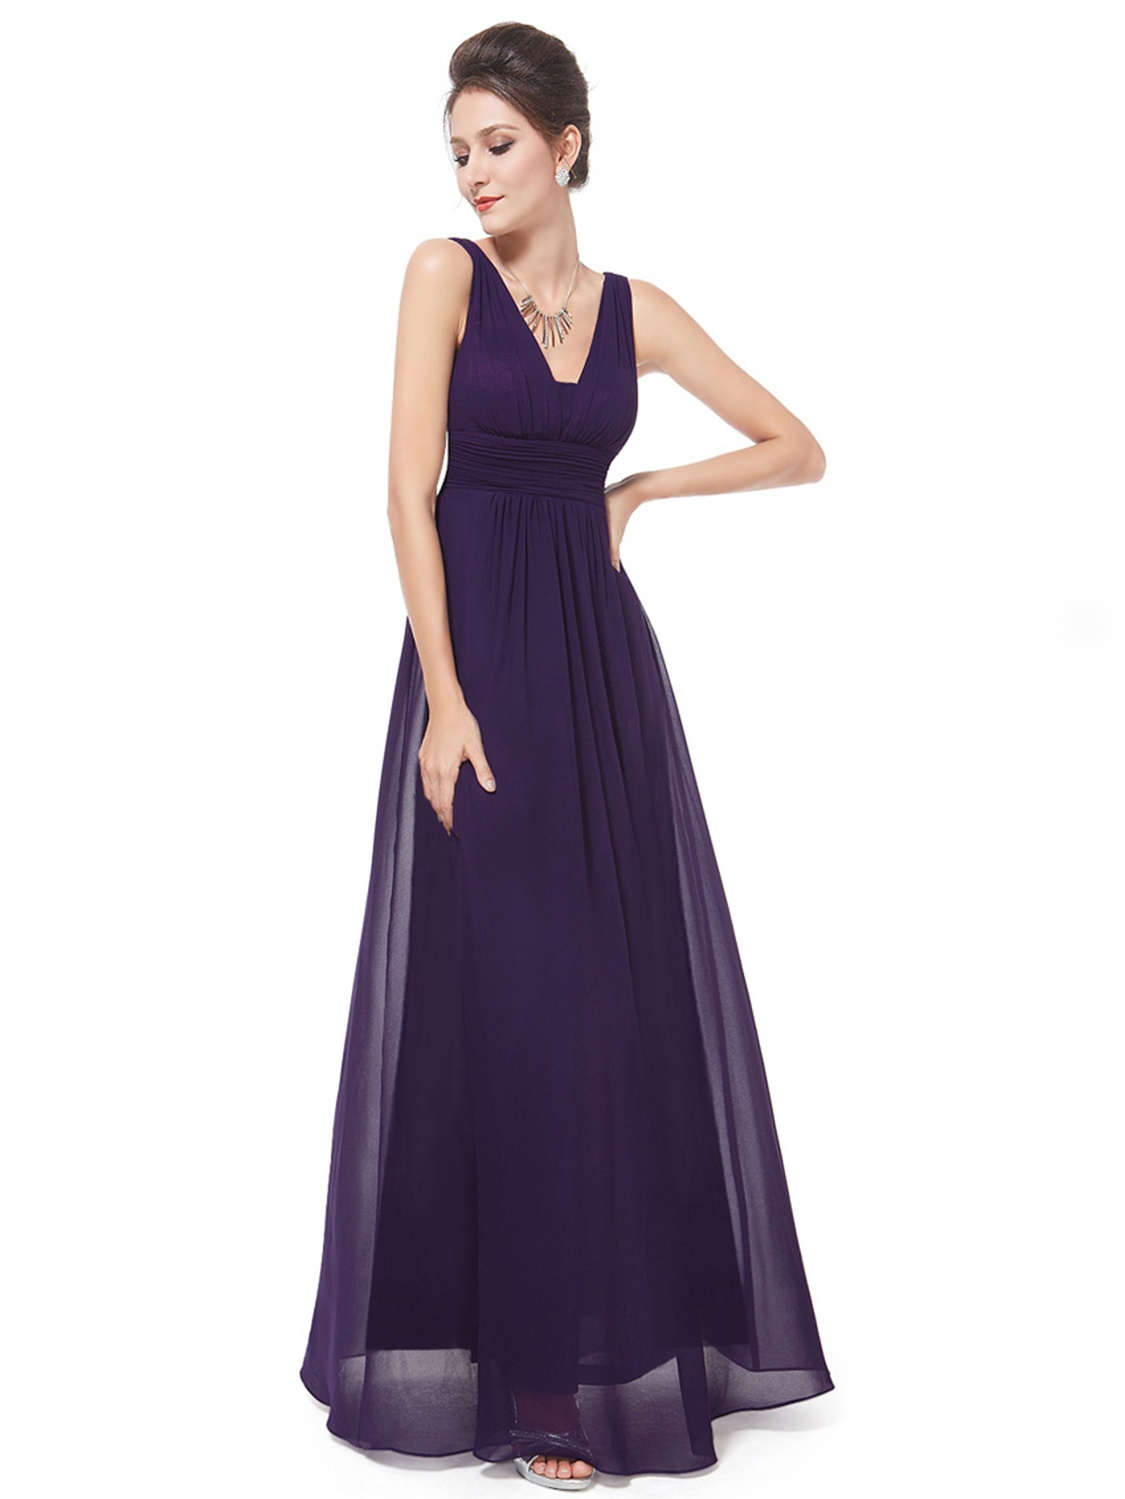 Ever-Pretty Women's Elegant Long Maxi V Neck Chiffon Evening Cocktail Prom Party Bridesmaid Wedding Guest Formal Dresses... by Ever Pretty Garment Inc.